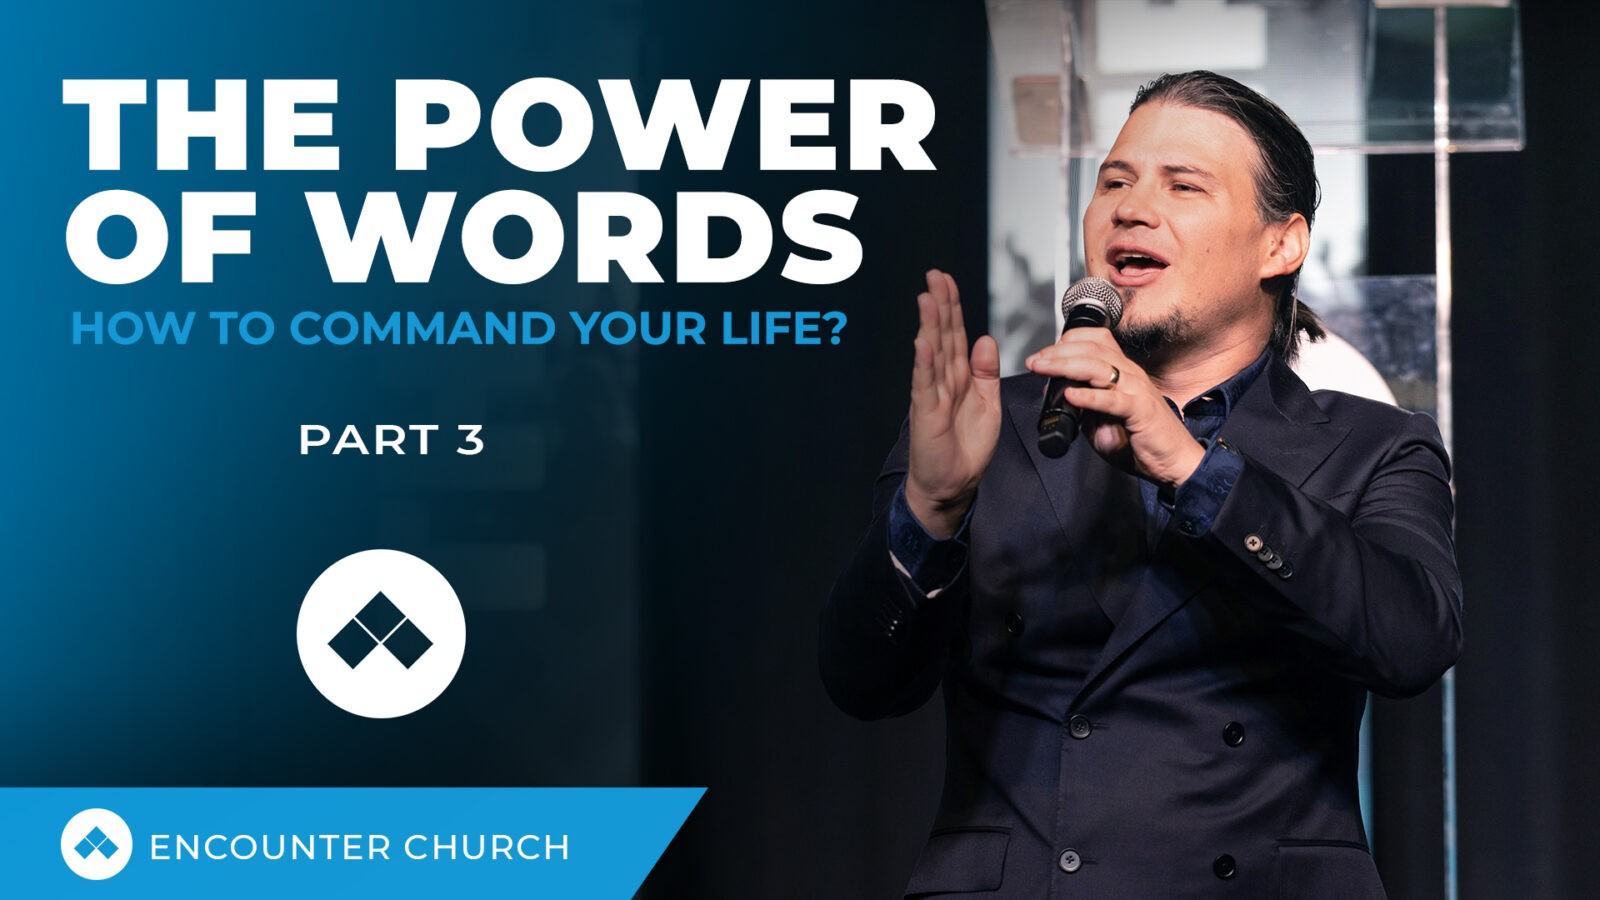 The Power of Words Part 3